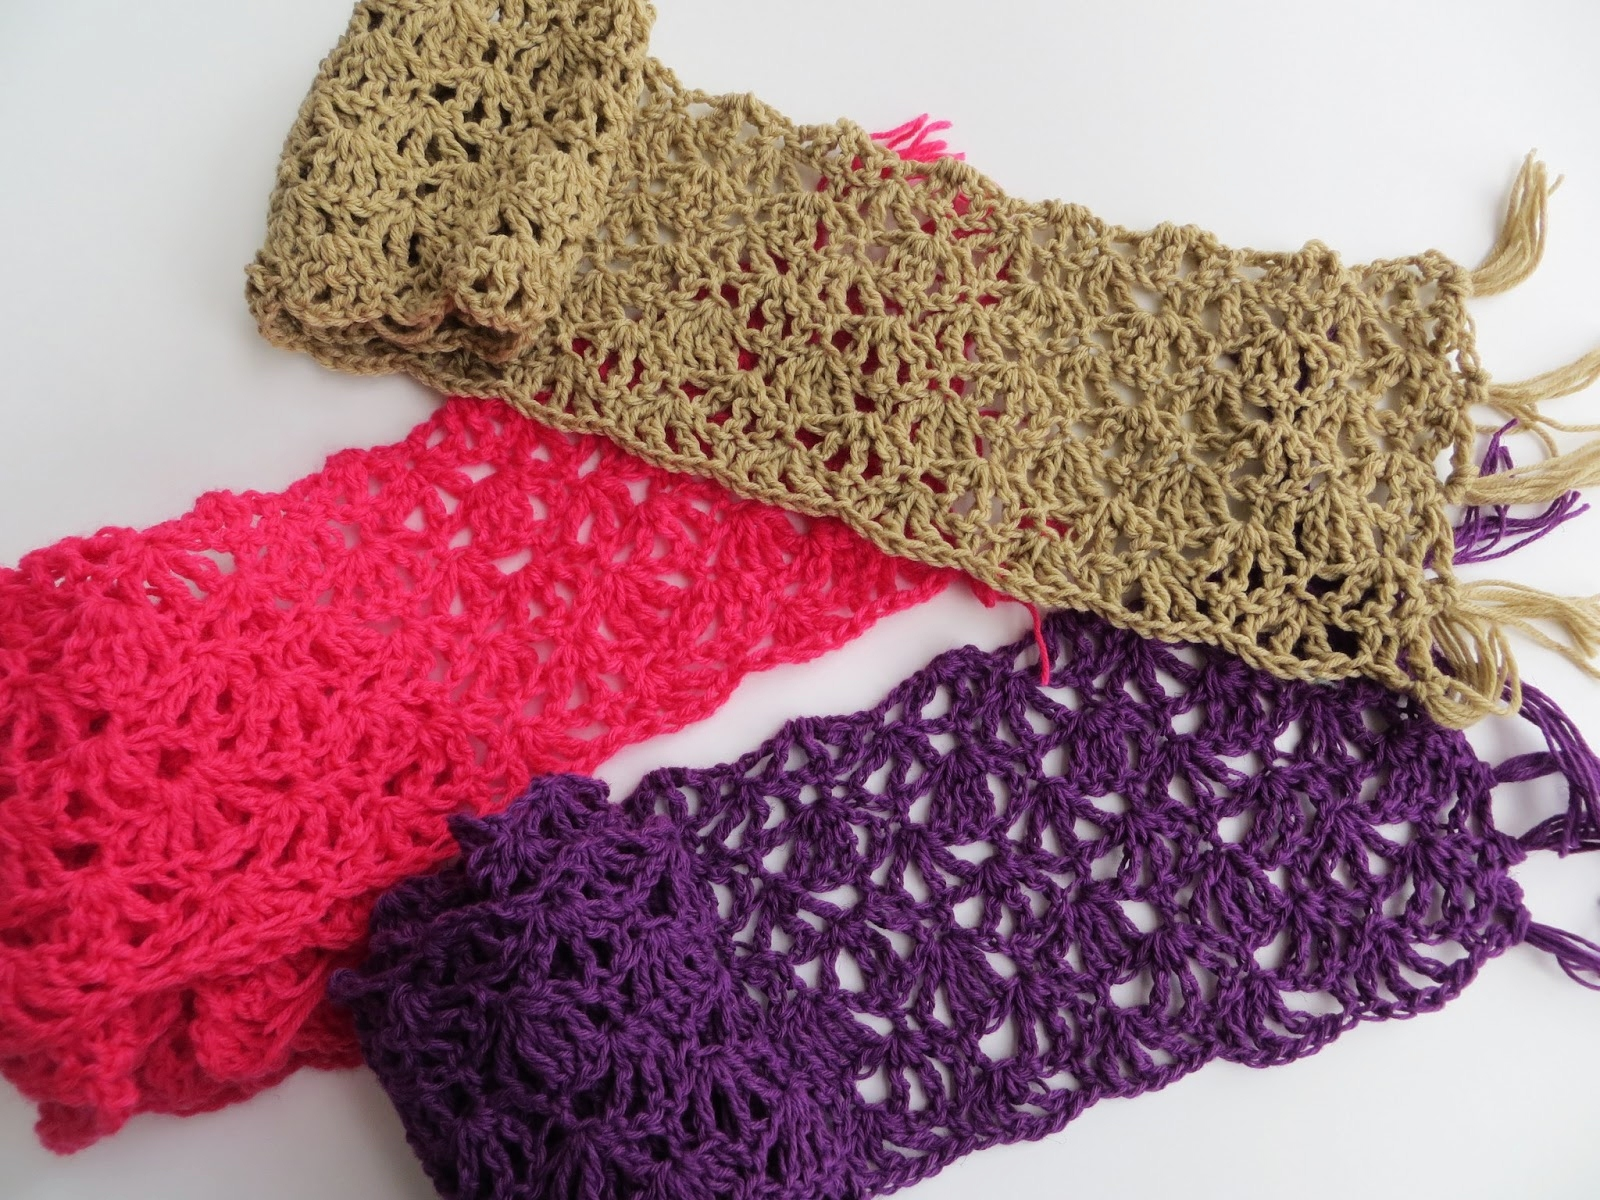 Crocheting Define : Crochet Dreamz: Alana Lacy Scarf, Free Crochet Pattern